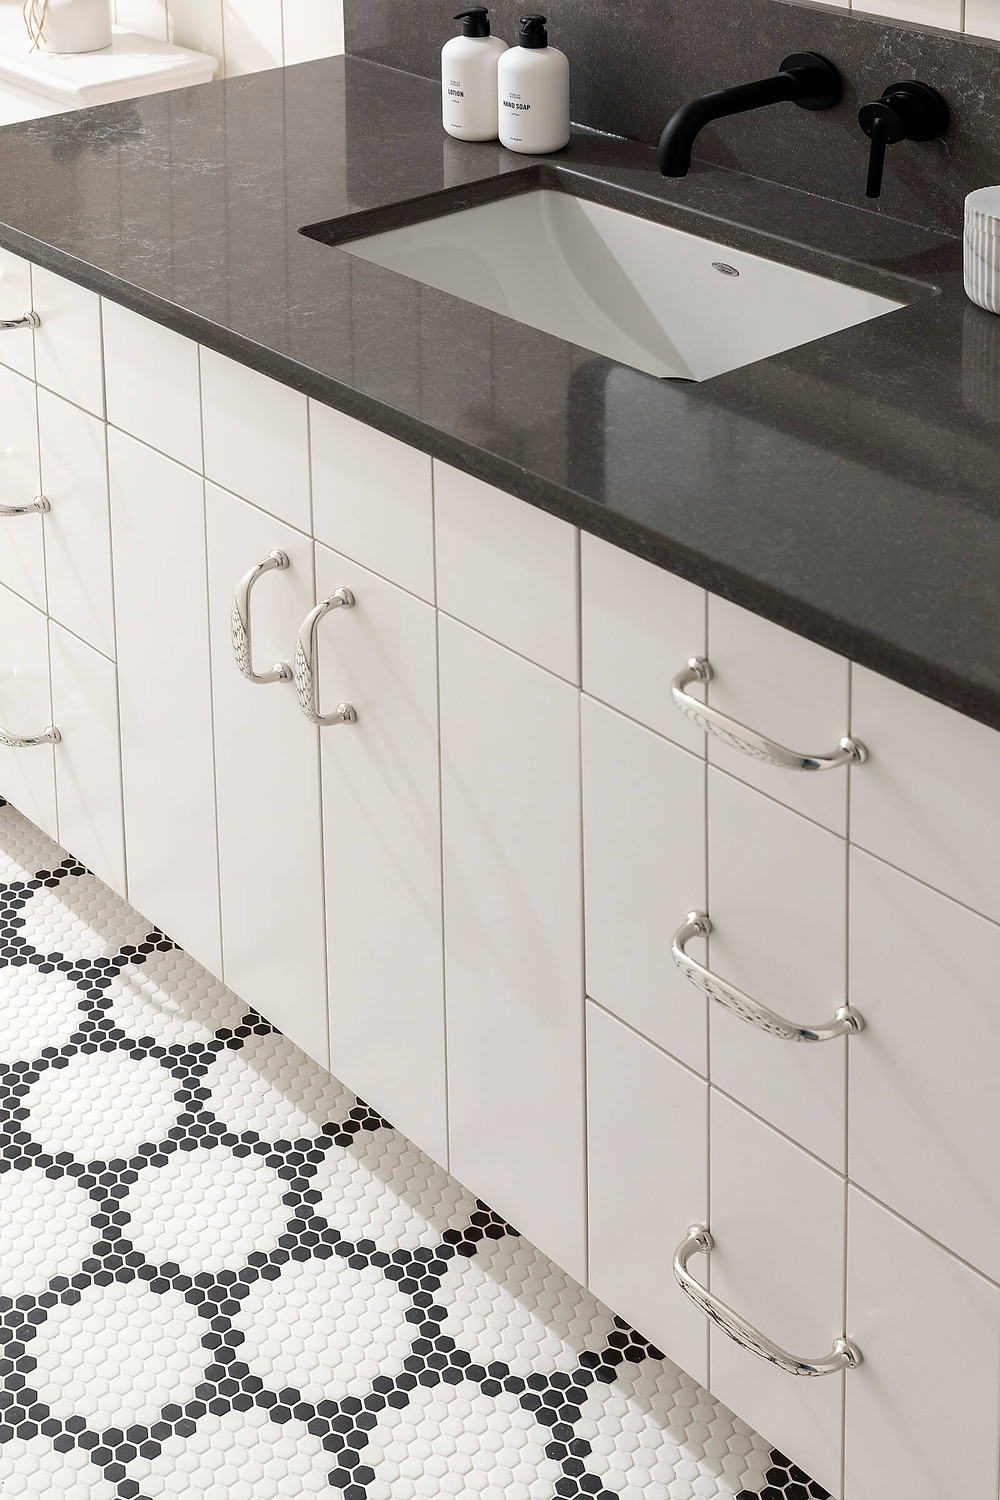 Benjamin Moore Cloudy Gray painted v groove vanity, black and white glass floor tile and black quartz countertop.